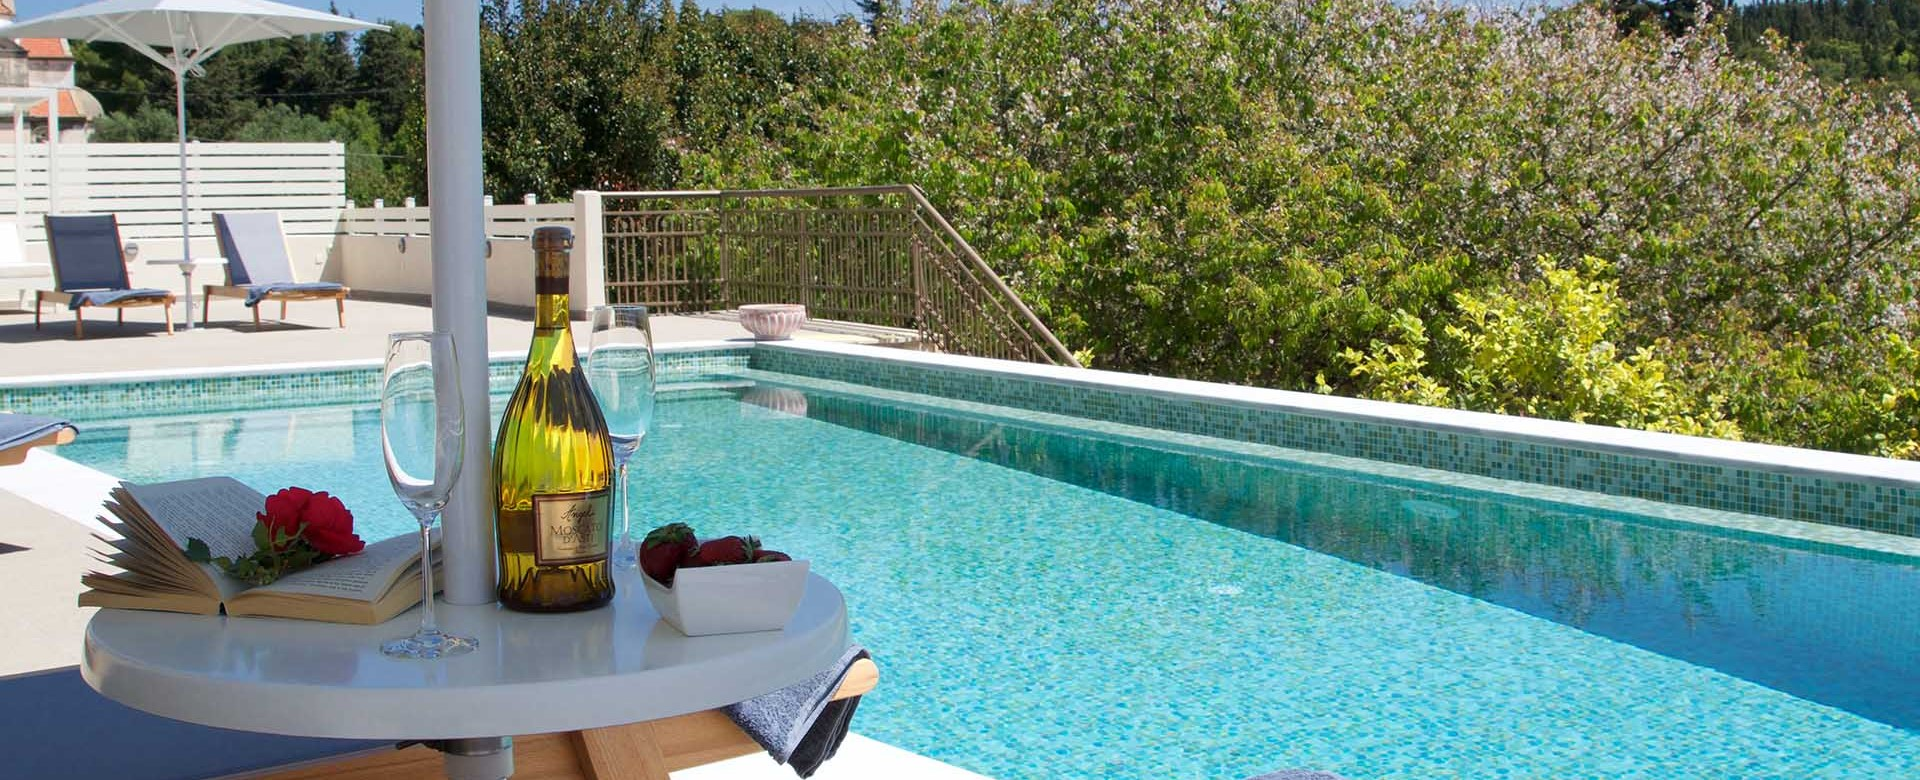 Get maximum holiday relaxation with a good book and good wine by the pool at Magnolia Apartments, Fiscardo, Kefalonia, Greek Islands